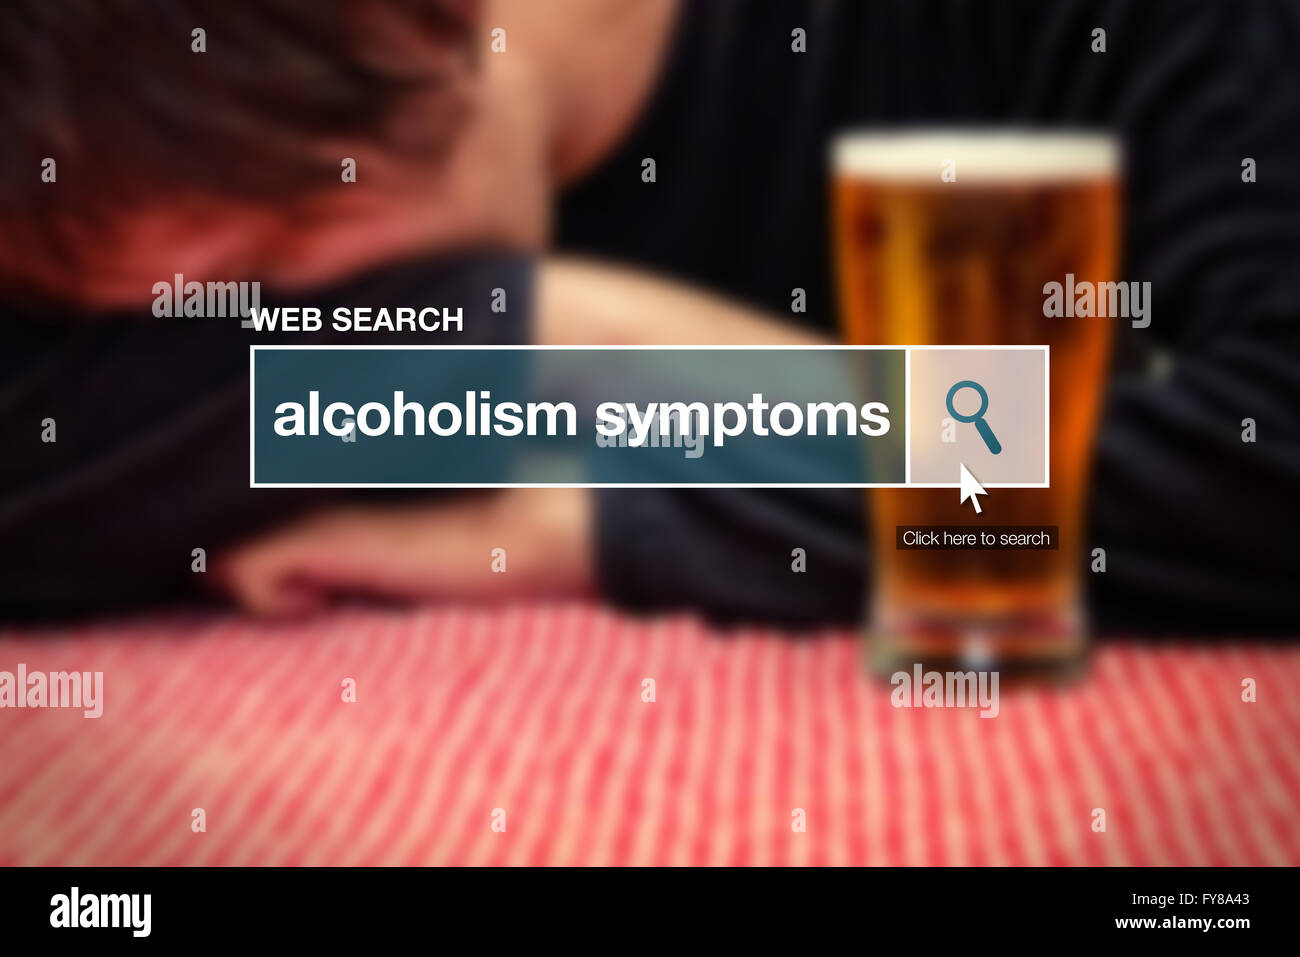 Web search bar glossary term - alcoholism symptoms definition in internet glossary. - Stock Image